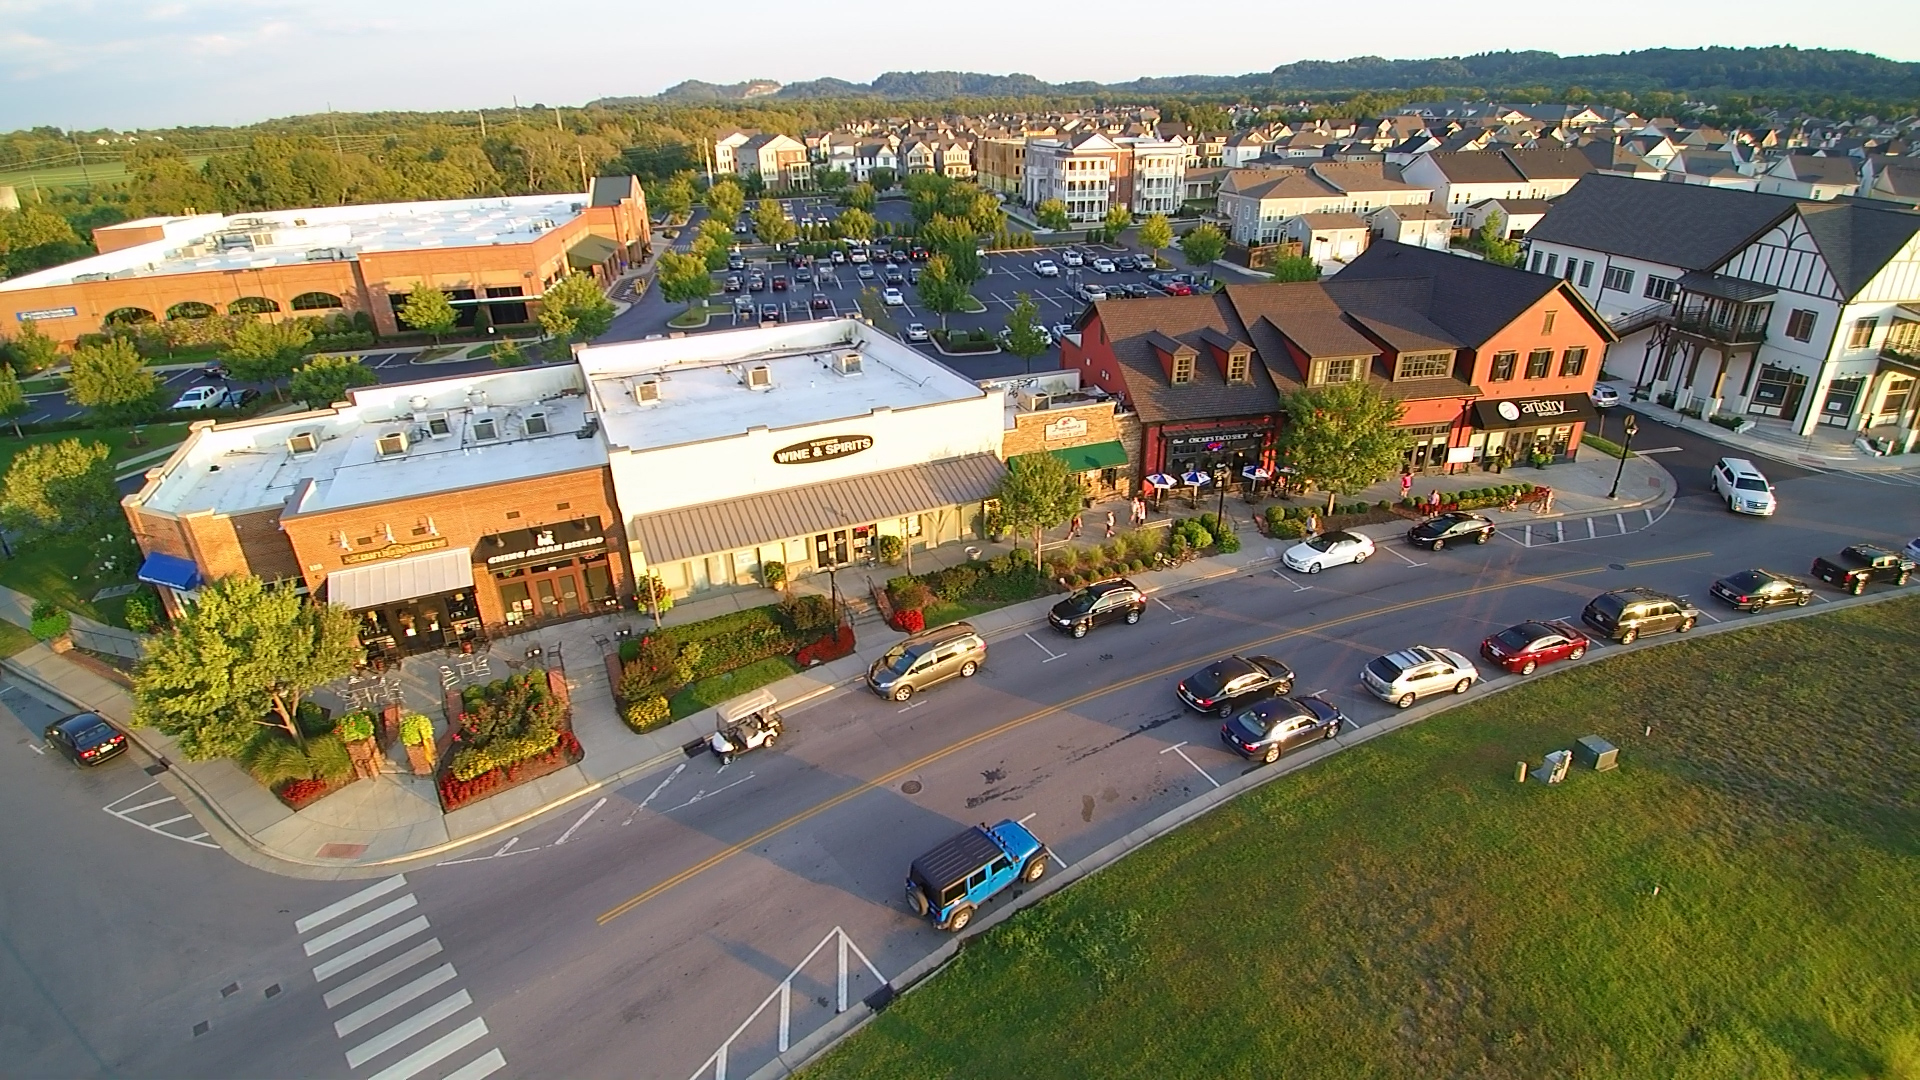 Westhaven Town Center in Franklin, TN Drone Services by FranklinAerial.com